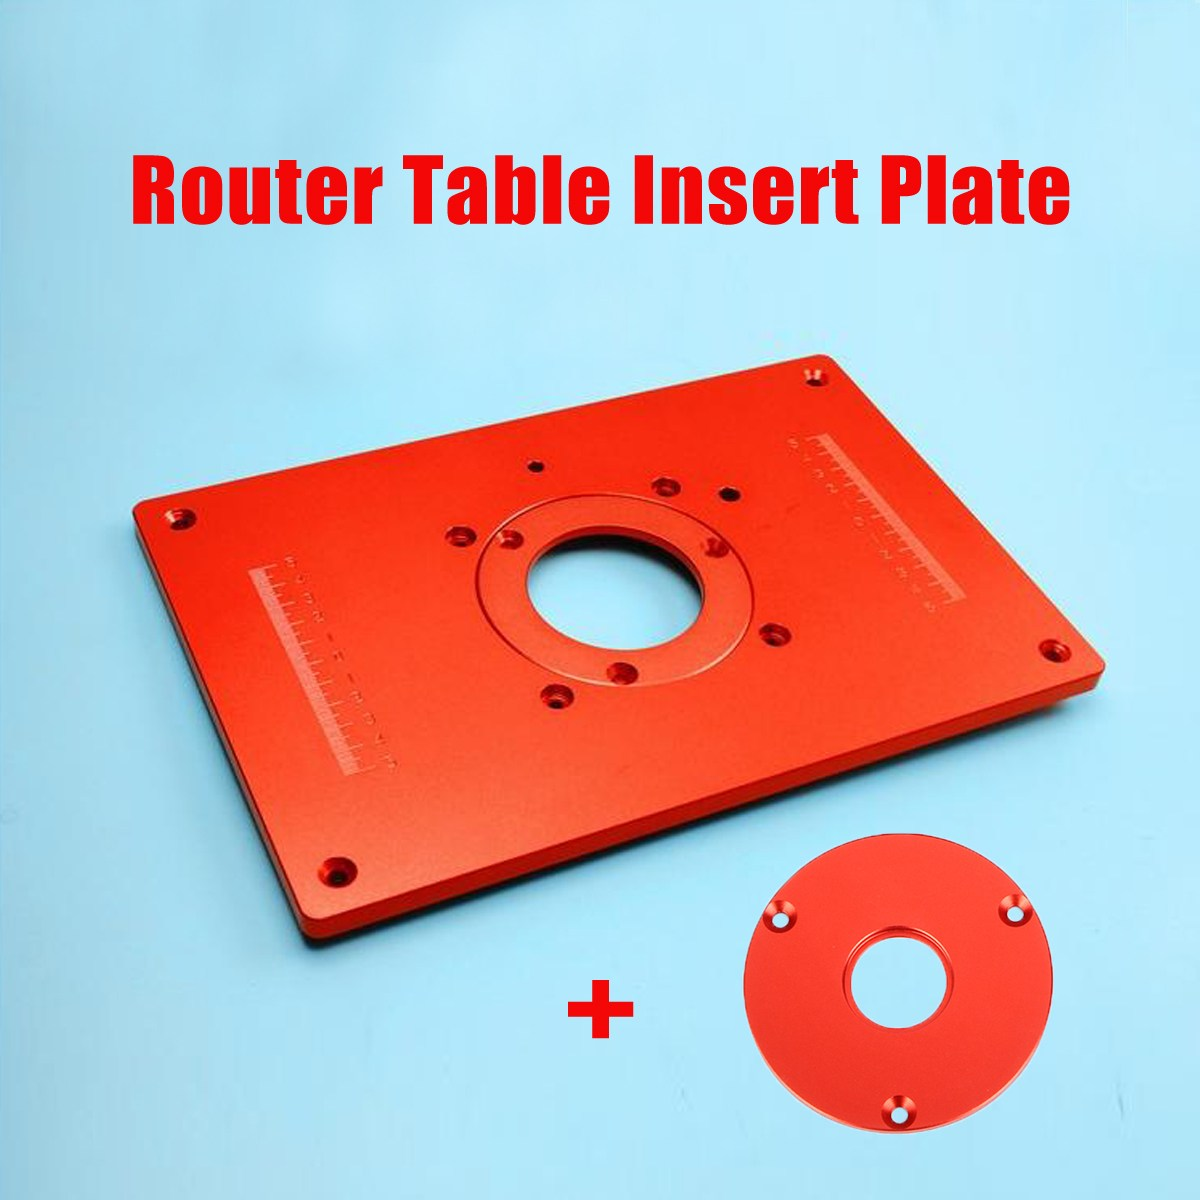 High quality universal router table insert plate aluminium alloy for high quality universal router table insert plate aluminium alloy for diy woodworking engraving machine 200x300x10mm in wood routers from tools on greentooth Gallery